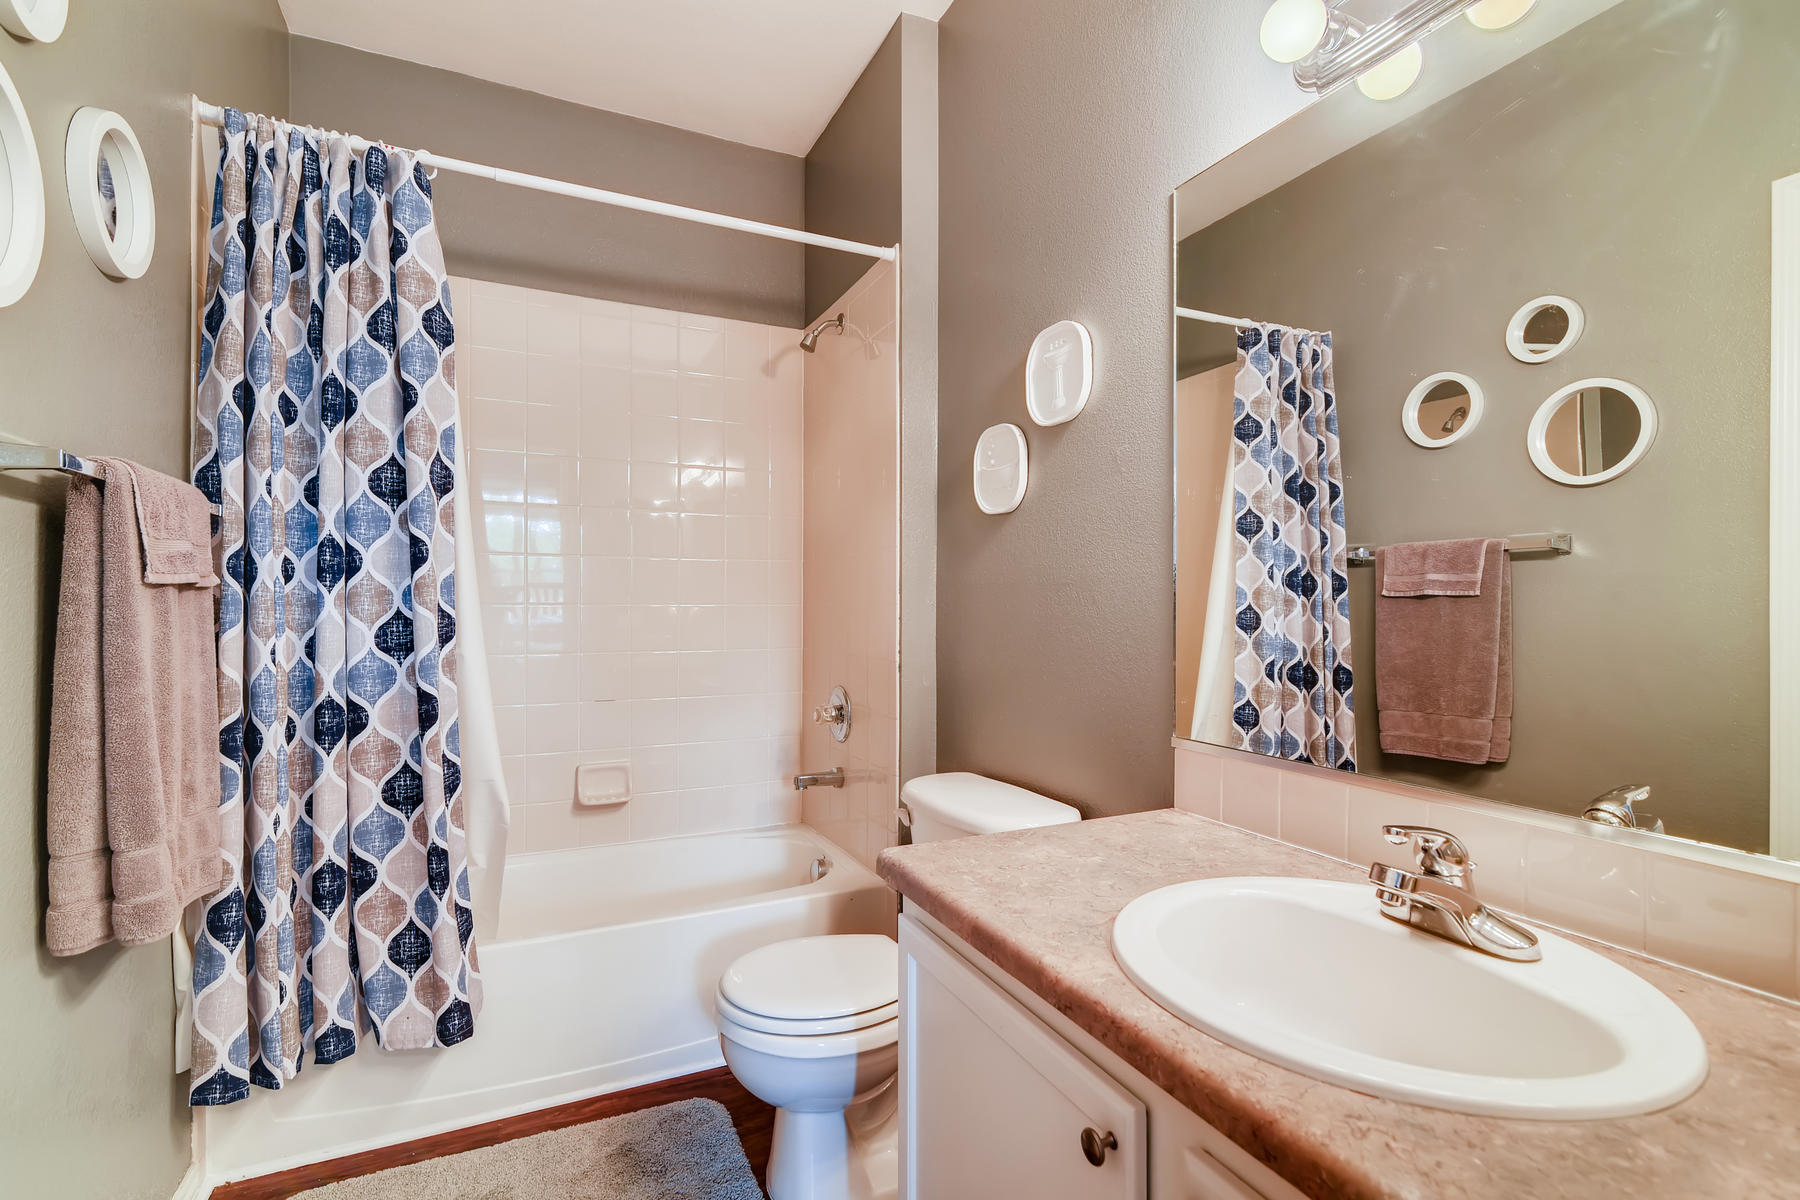 4672 W 20th Street Rd 2525-022-020-Bathroom-MLS_Size.jpg